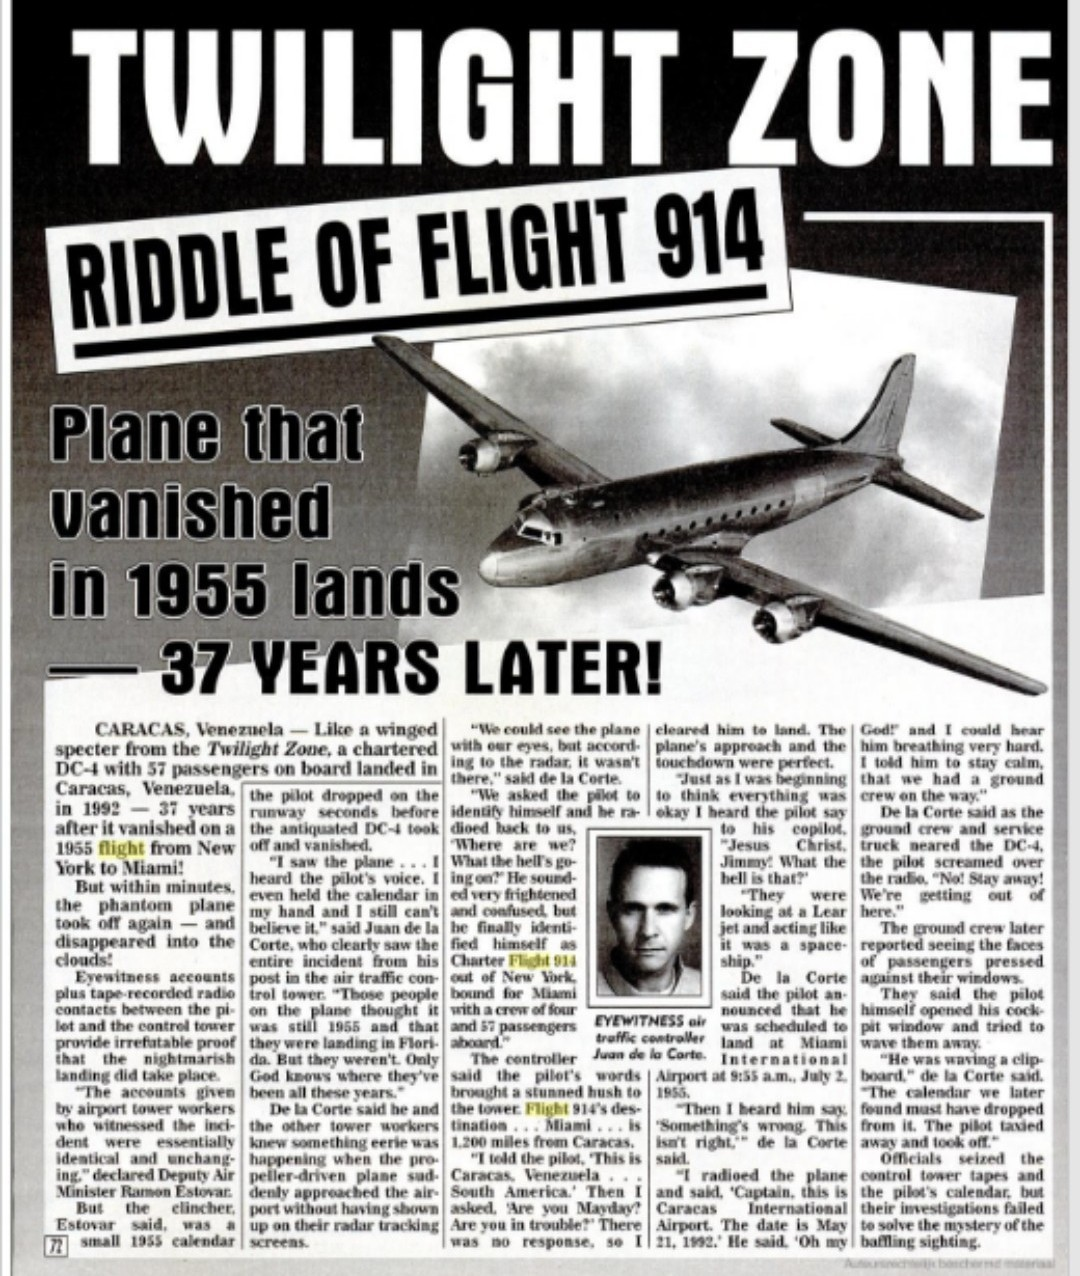 Hello What Is The True Mystery Behind The Flight 914 That Was Landed In 1955 On Lands After 37 Brainly In